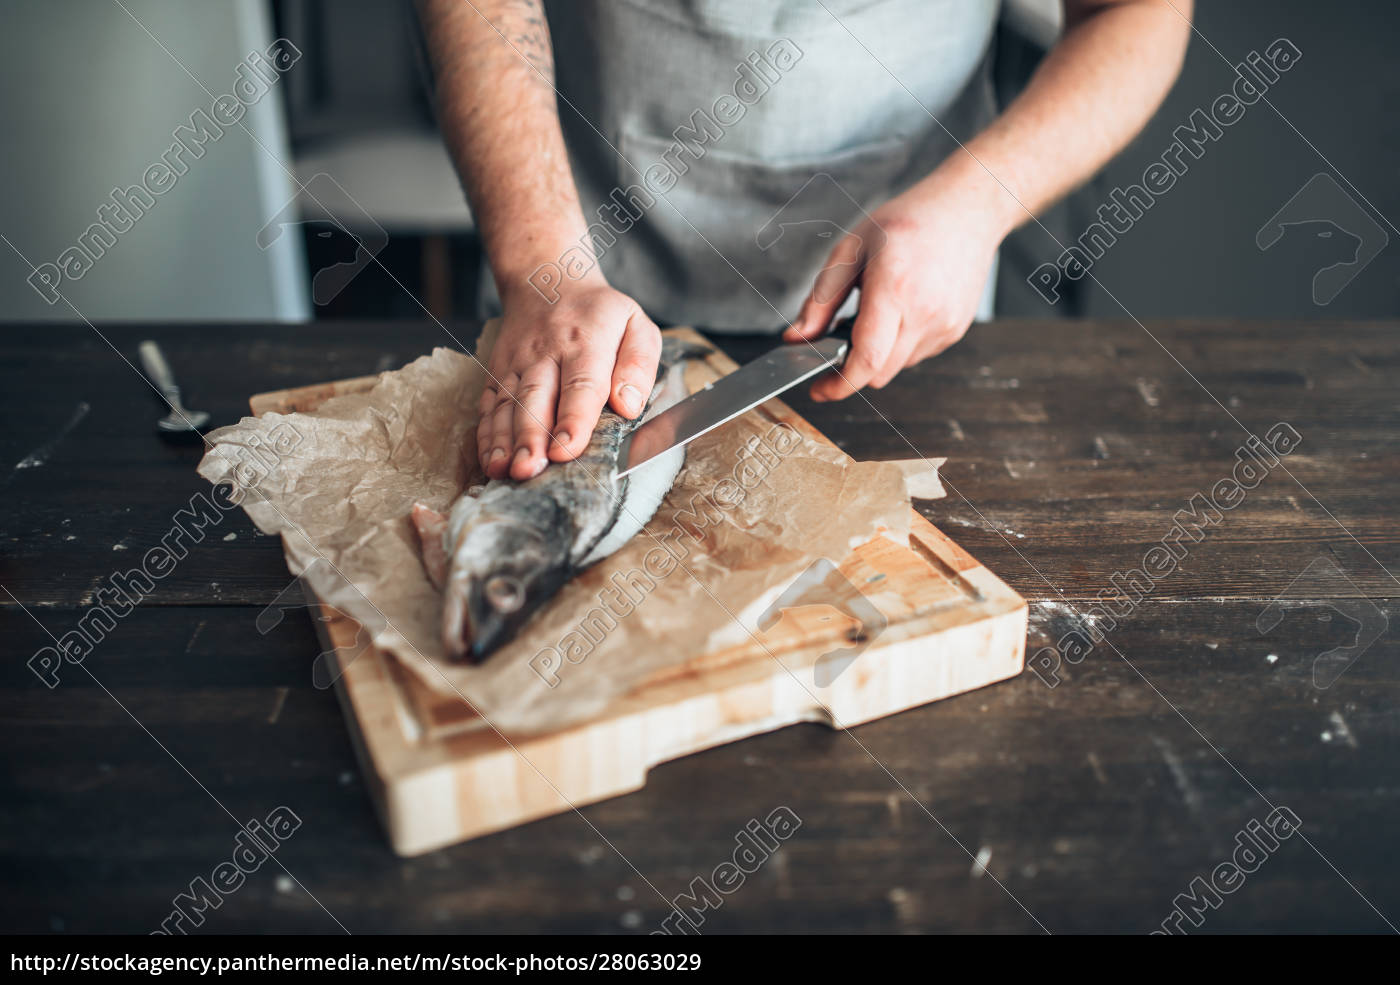 chef, hands, with, knife, cut, up - 28063029